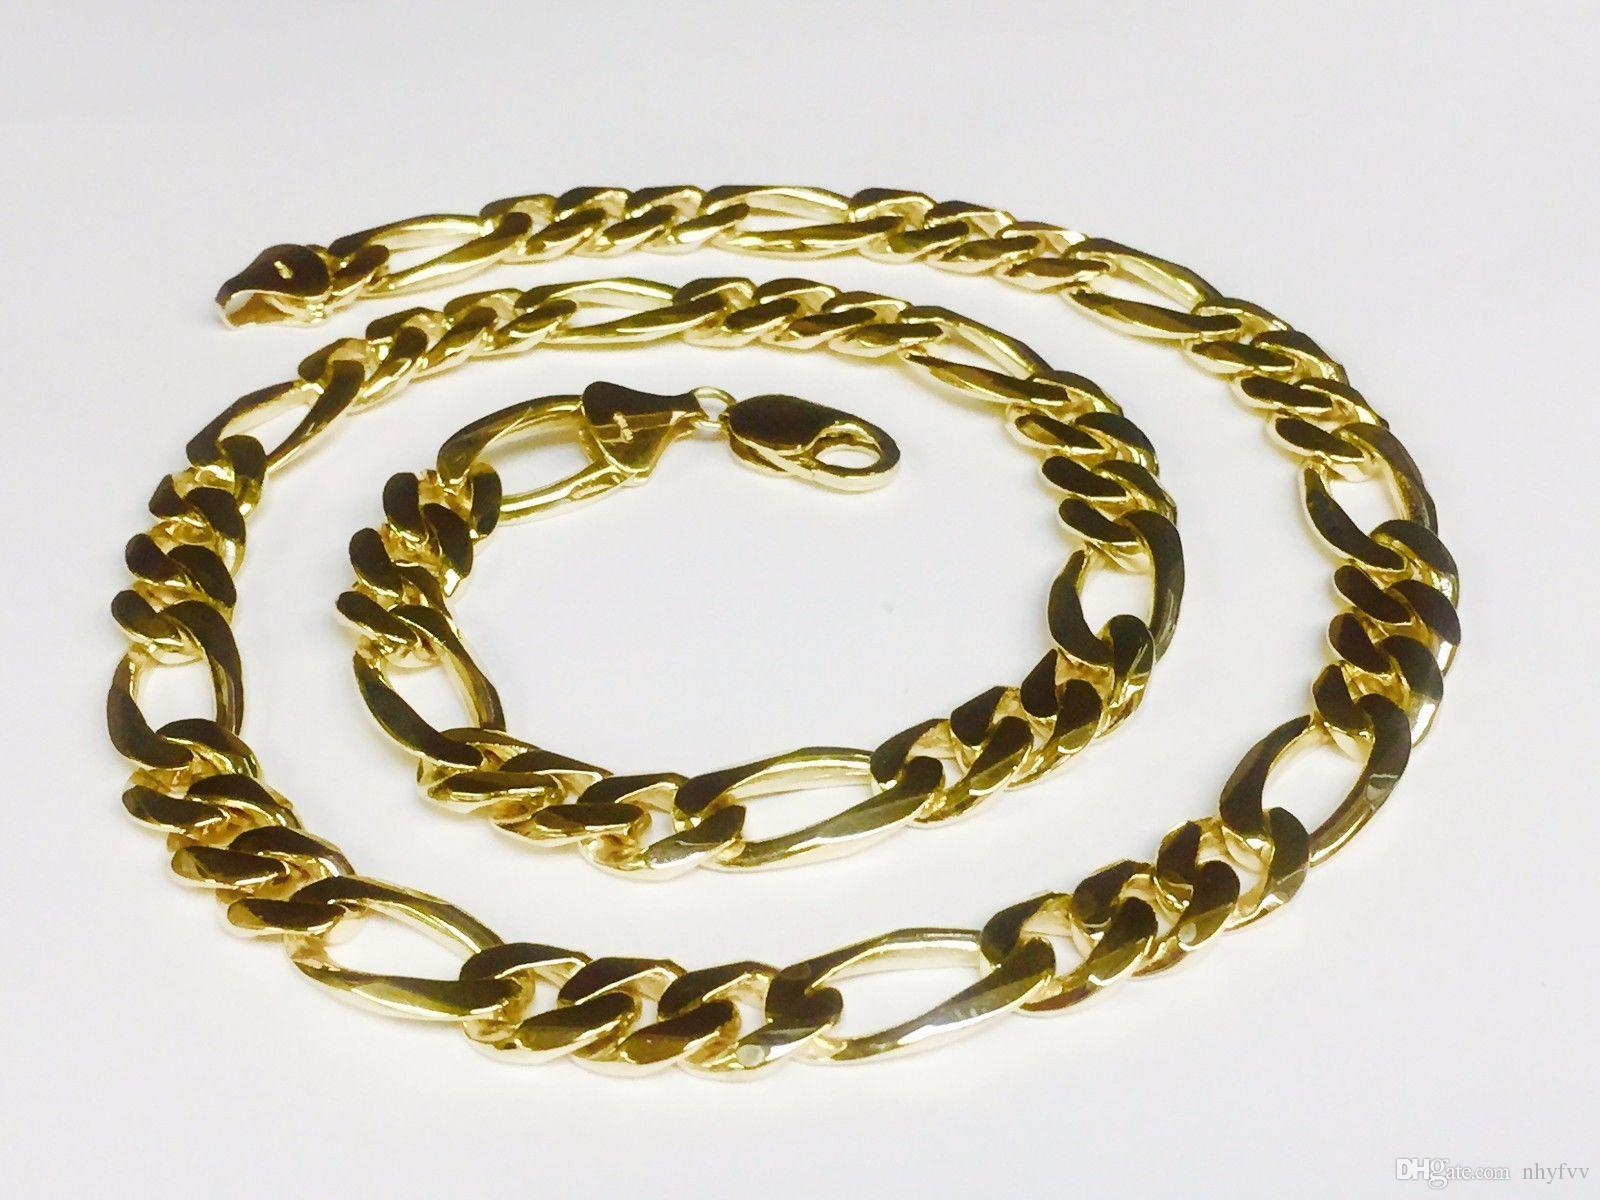 miami cuban chains steel com dp chain yellow solid heavy gold amazon link finish stainless